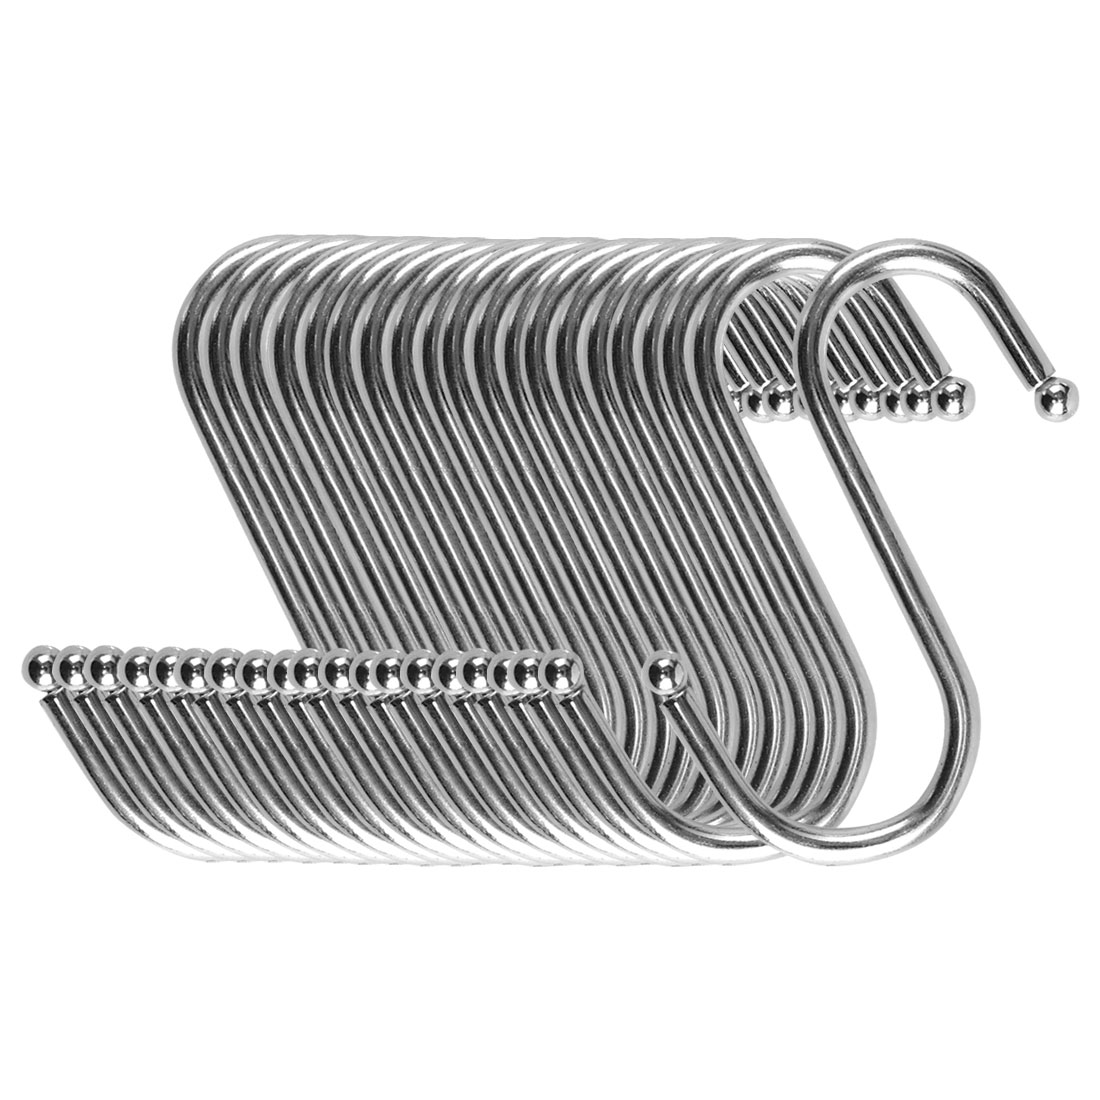 S Shape Hook Rack Stainless Steel for Kitchenware Clothes Towel Holder 20 Pack